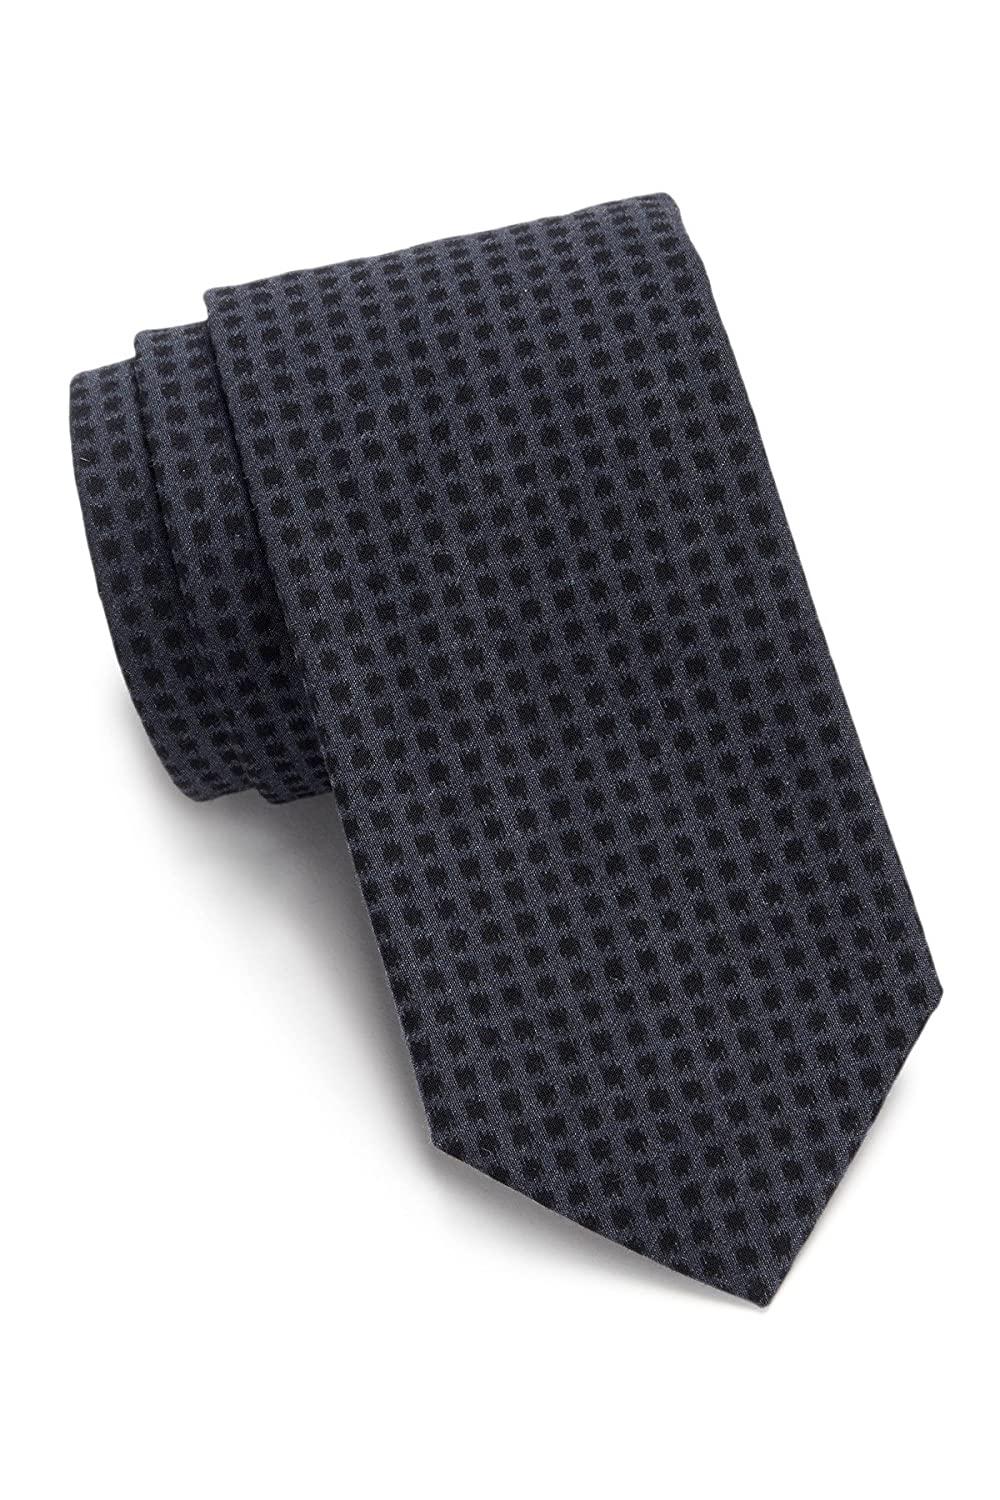 Boss Hugo Boss Micro Check Woven Italian Crafted Tie, Navy 50302108